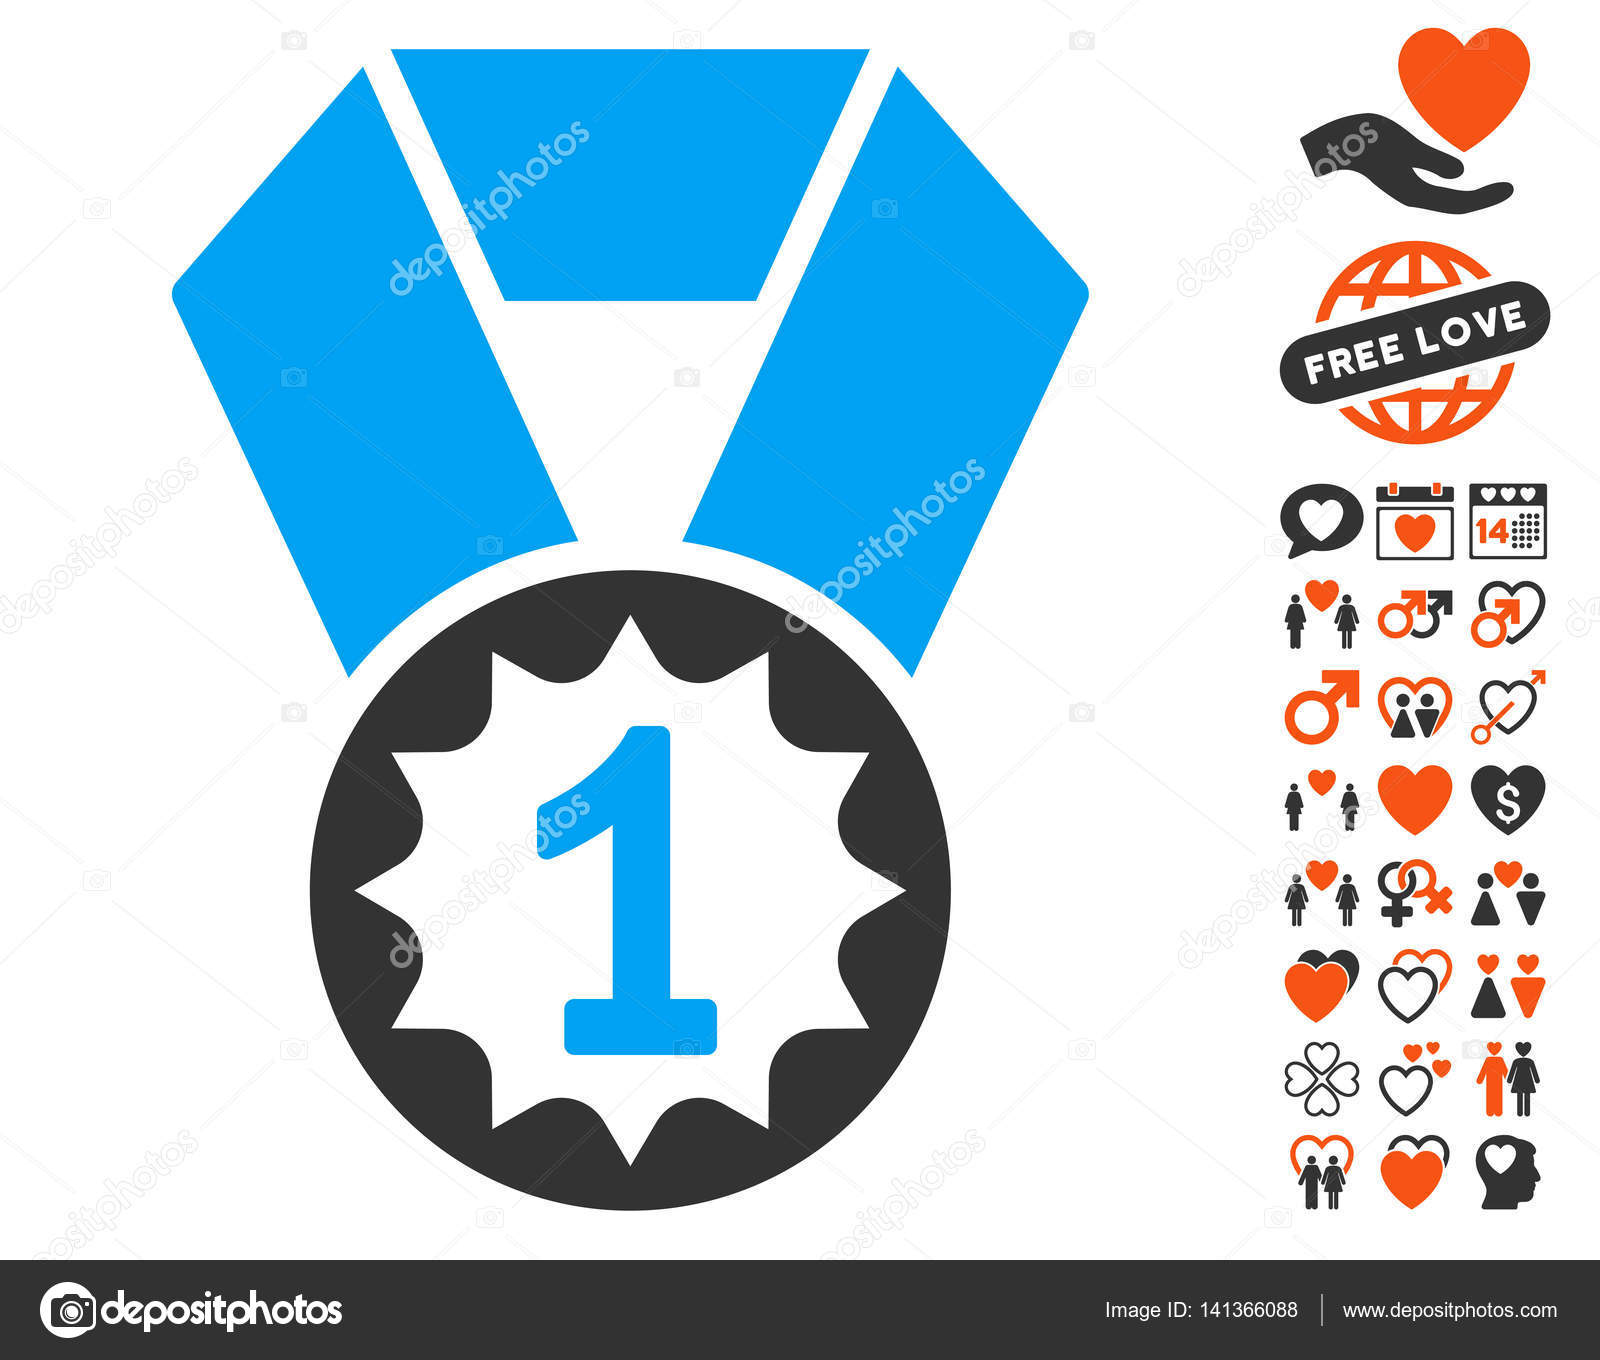 First Place Medal Icon with Lovely Bonus — Stock Vector